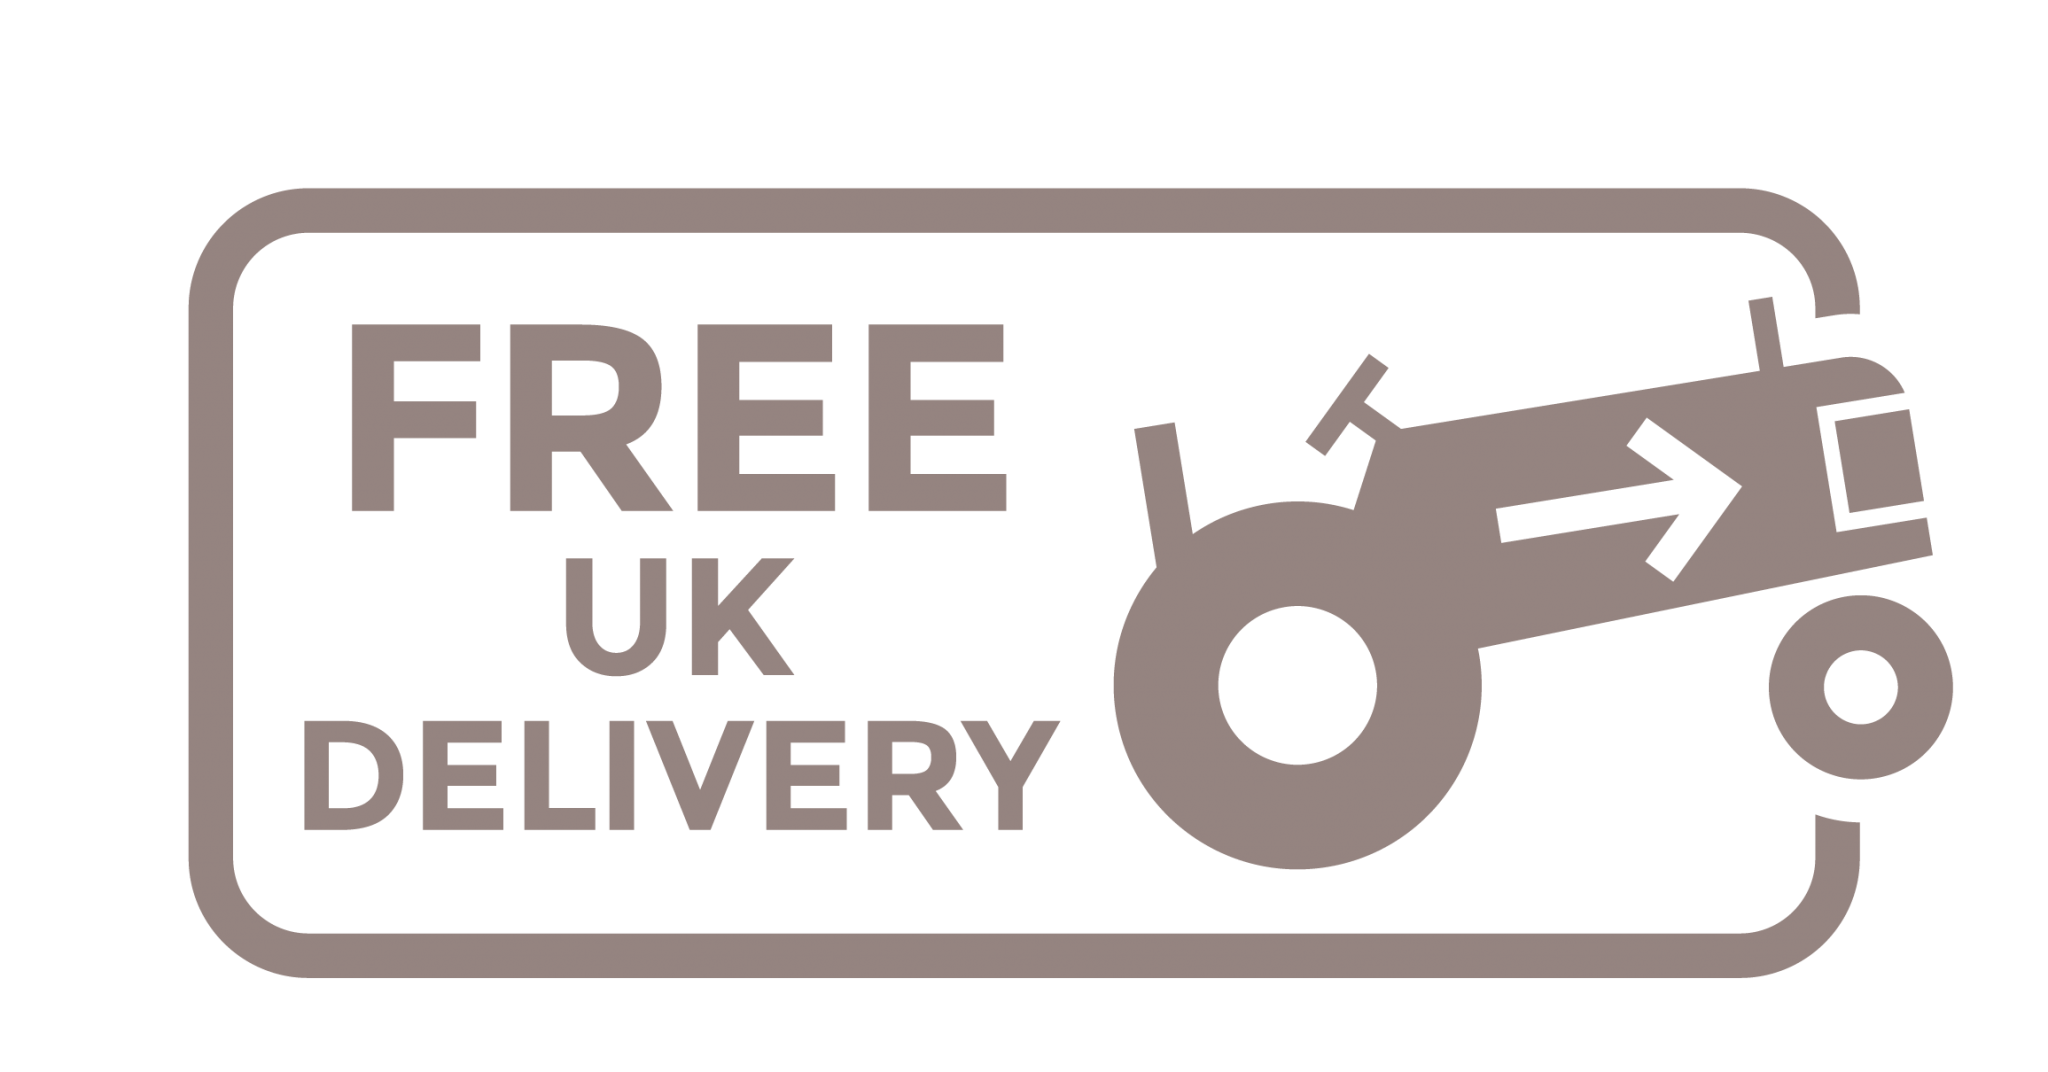 free_uk_delivery_stamp